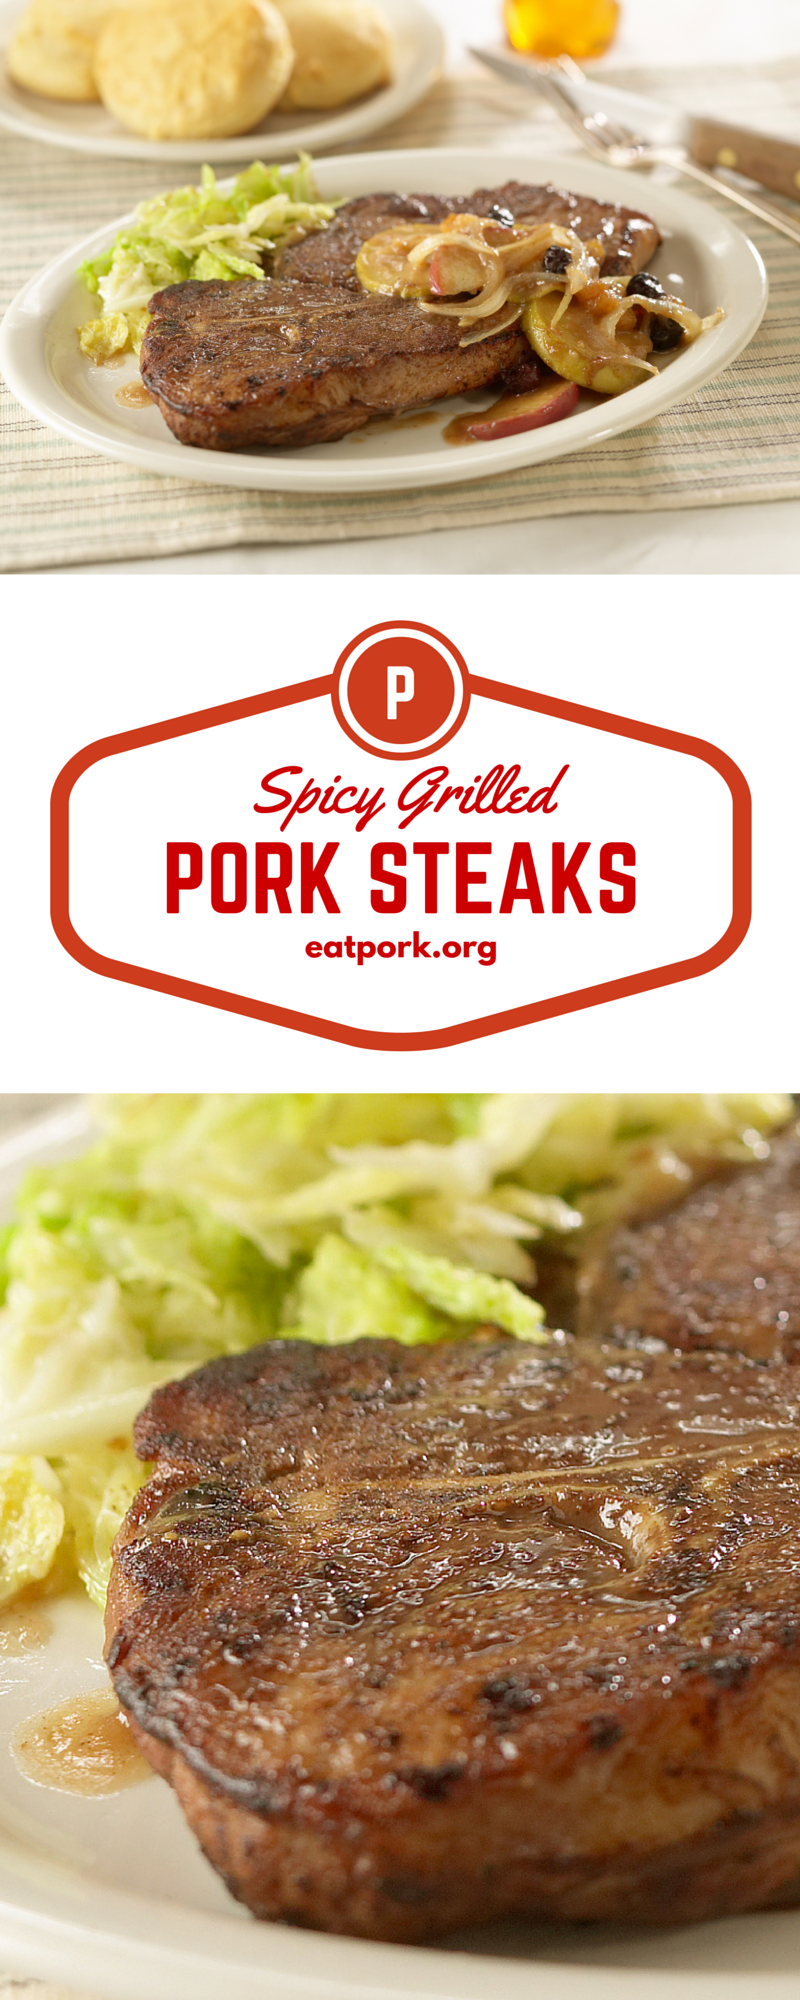 These are the best grilled pork steaks ever! Orange marmalade, chili powder and celery seed make these the perfect, inexpensive grilling meat. Pass the biscuits, please!